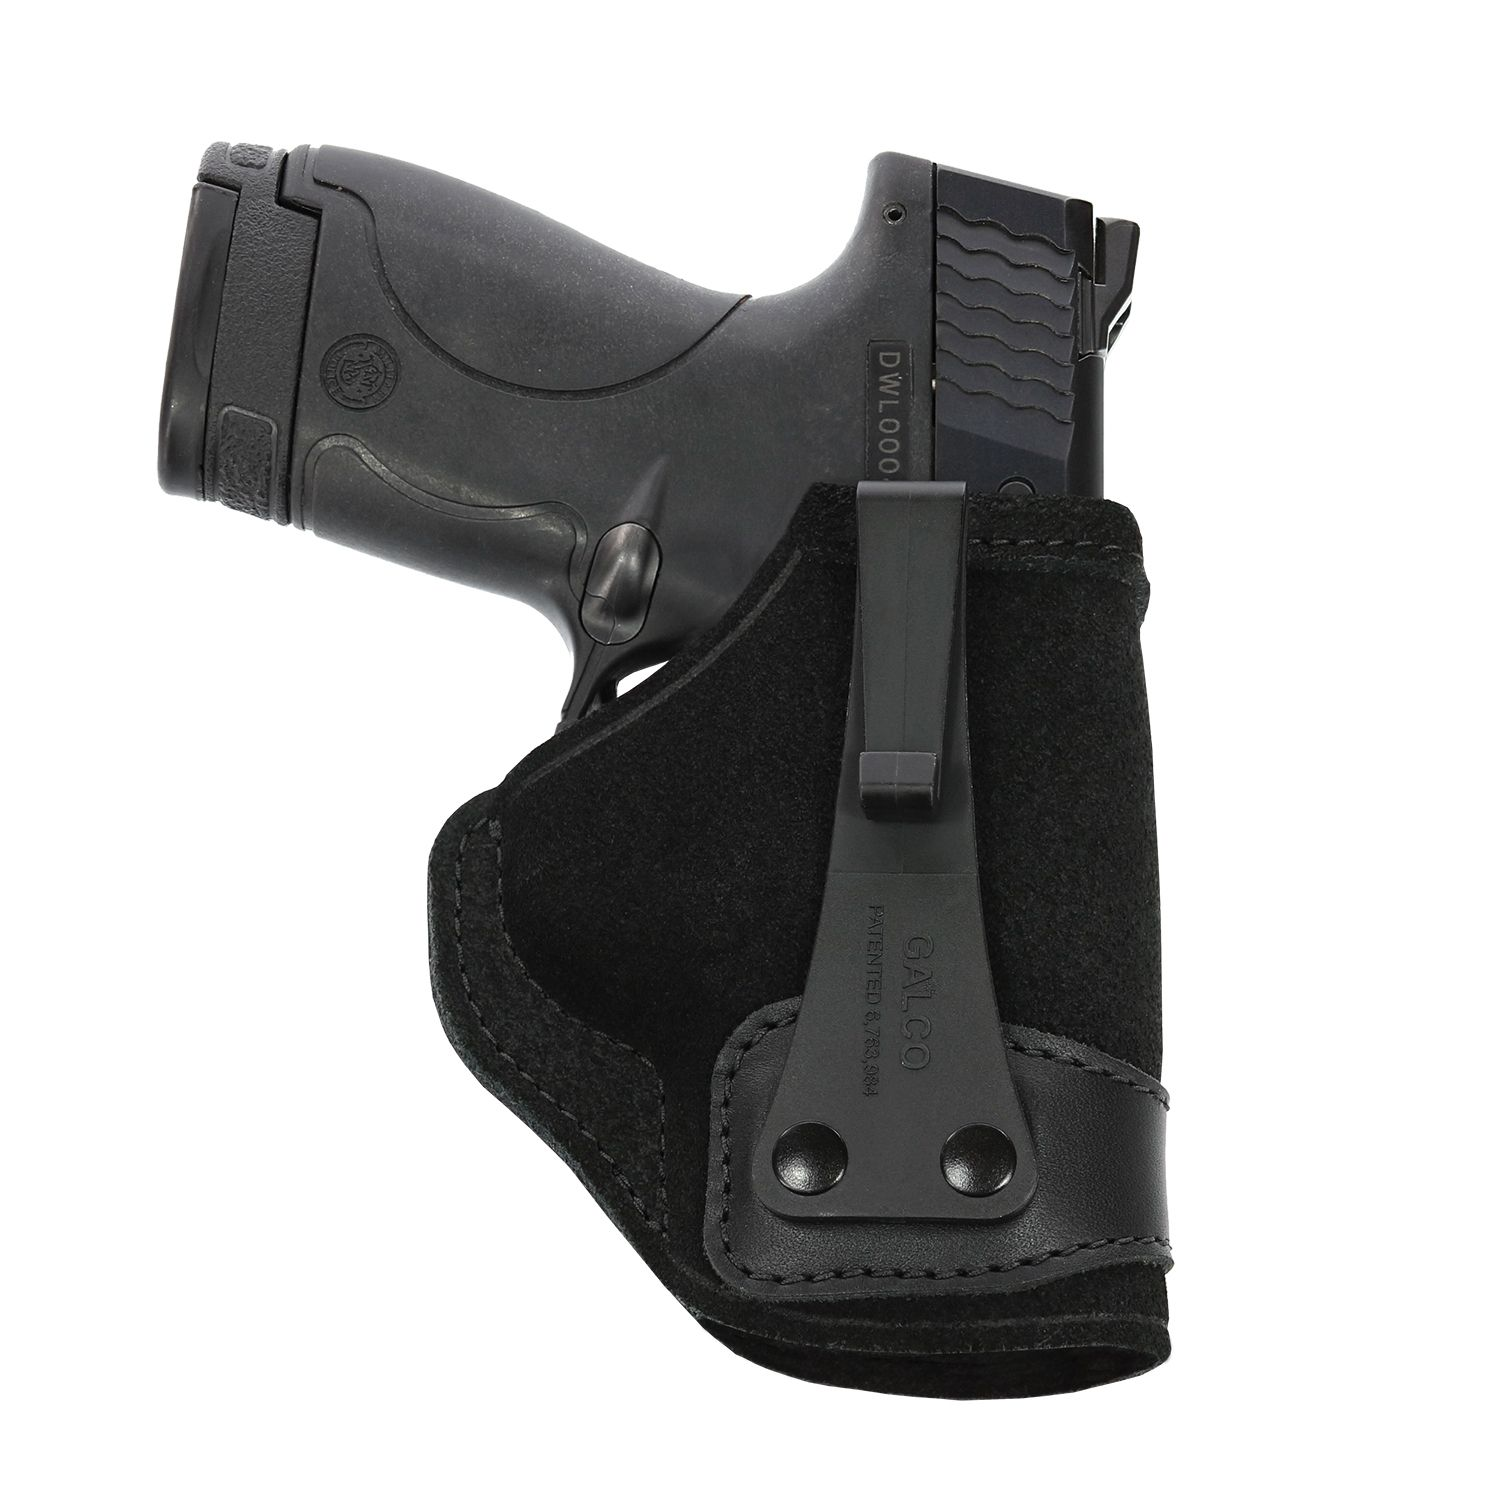 TUCK-N-GO IWB: Deep concealment and amazing affordability combine in